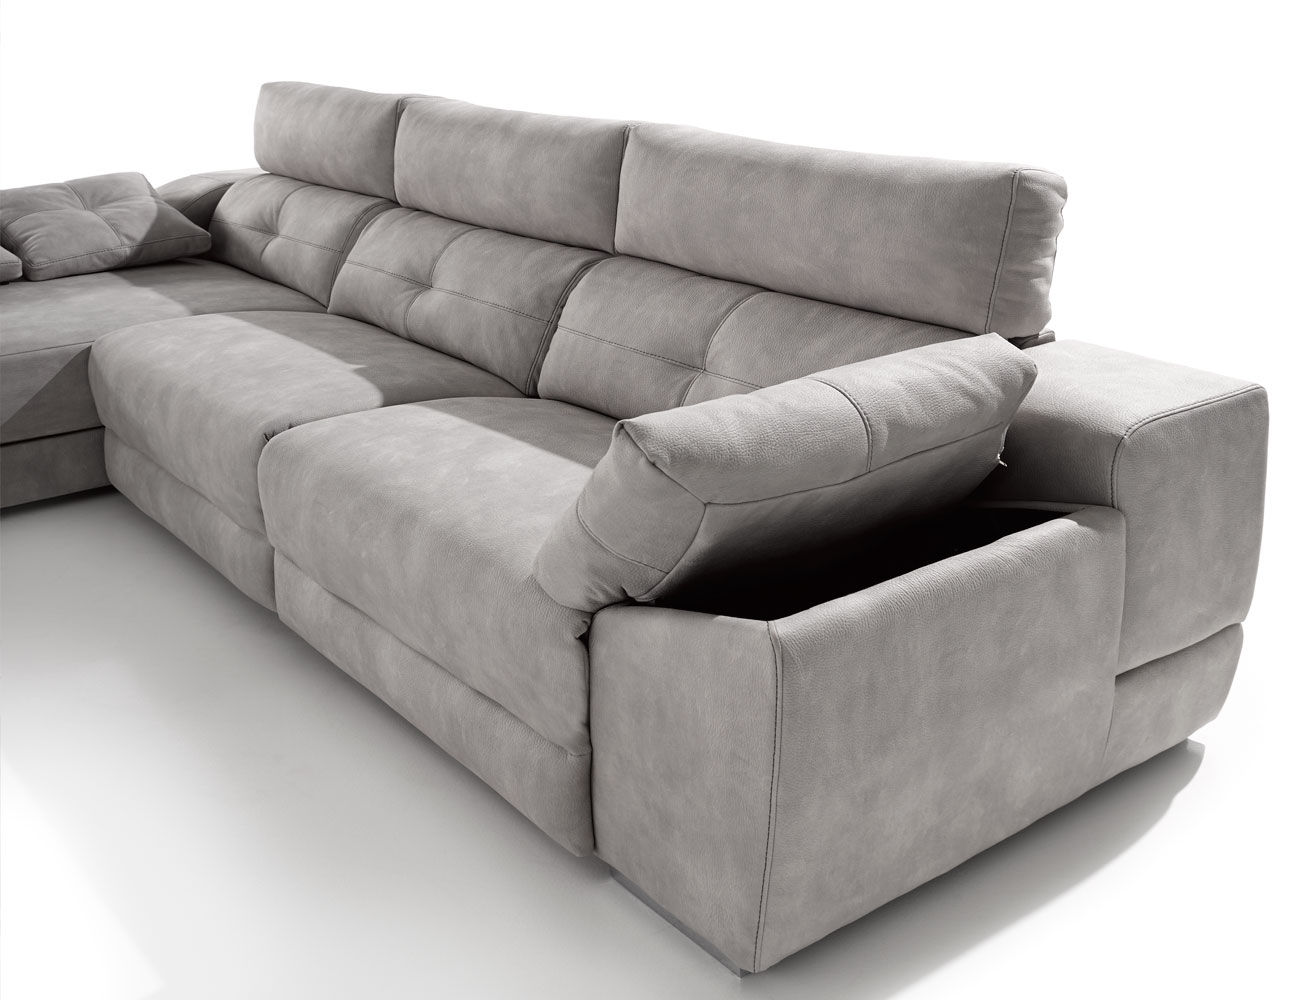 Sof 3 plazas chaiselongue de gama alta top deluxe con for Sofa piel chaise longue